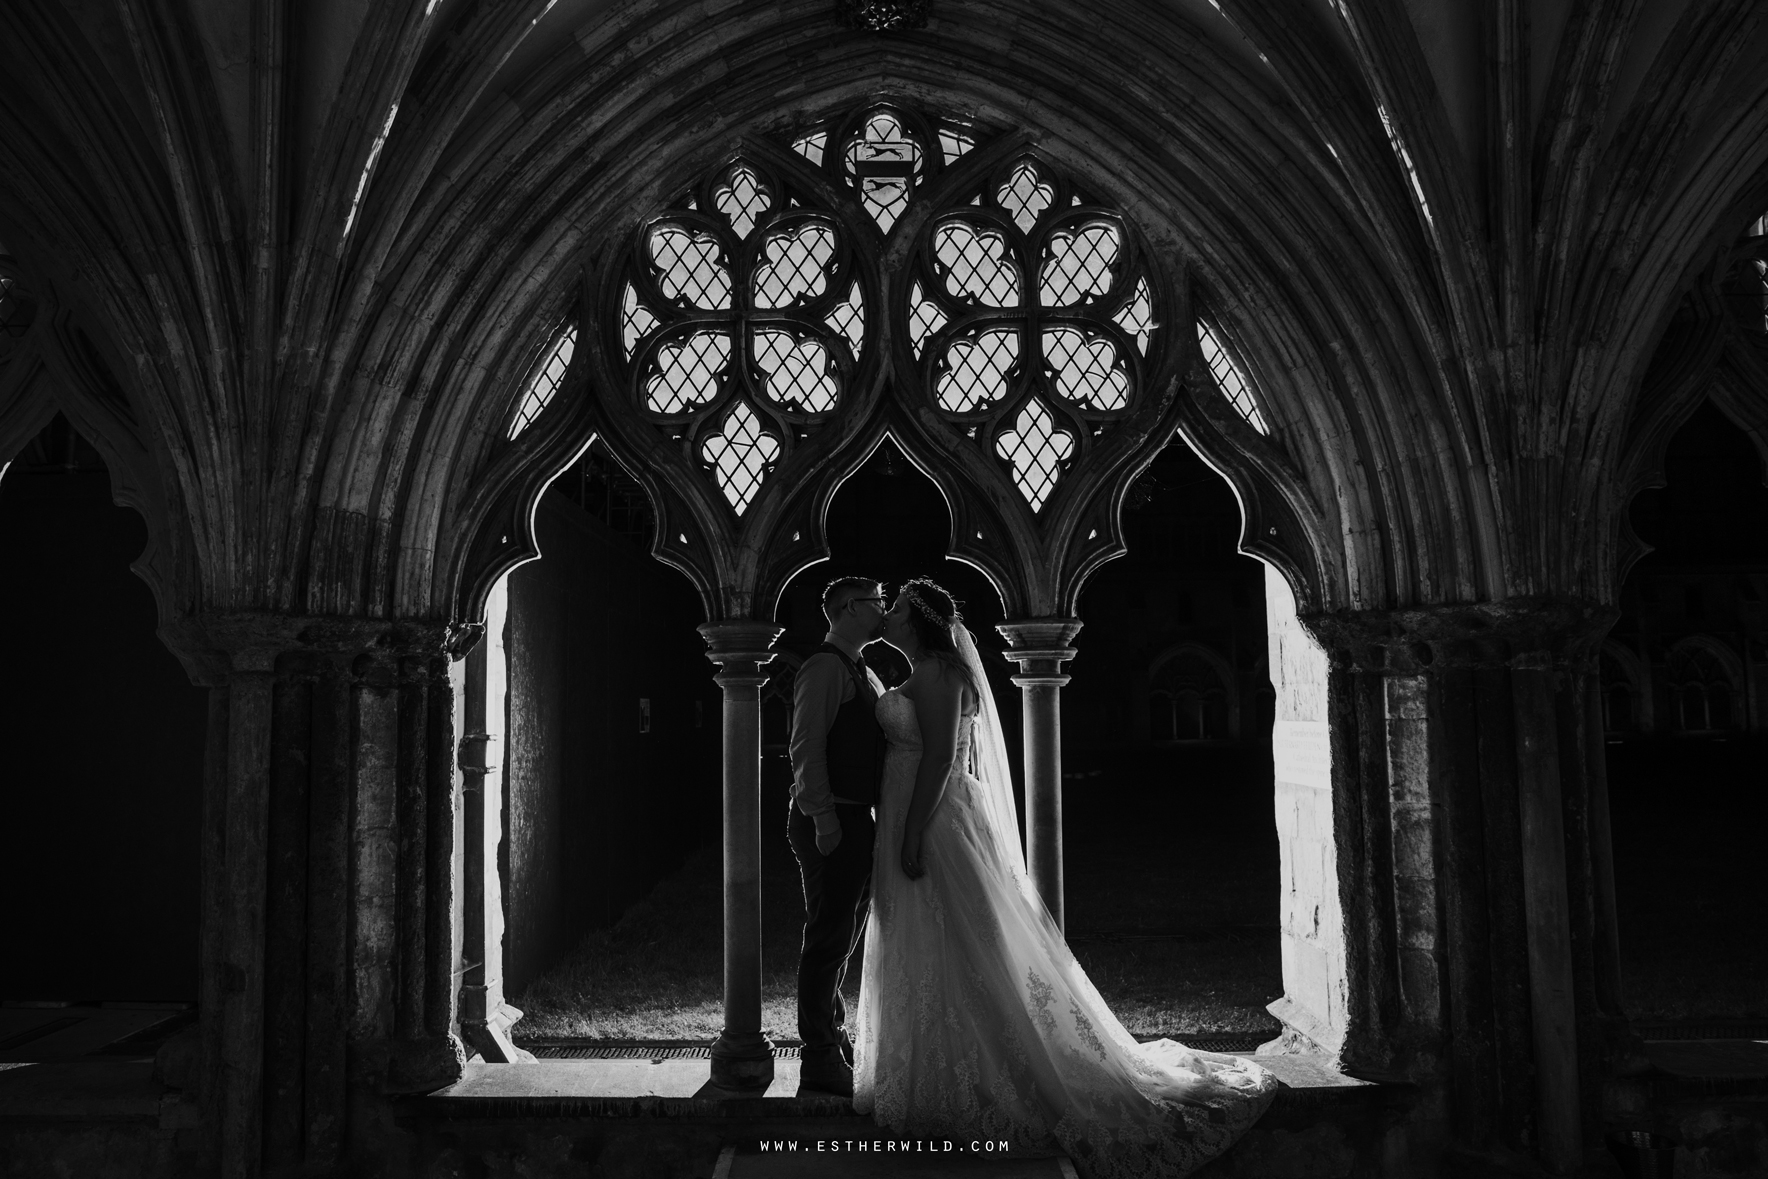 Norwich_Castle_Arcade_Grosvenor_Chip_Birdcage_Cathedral_Cloisters_Refectory_Wedding_Photography_Esther_Wild_Photographer_Norfolk_Kings_Lynn_3R8A3680.jpg